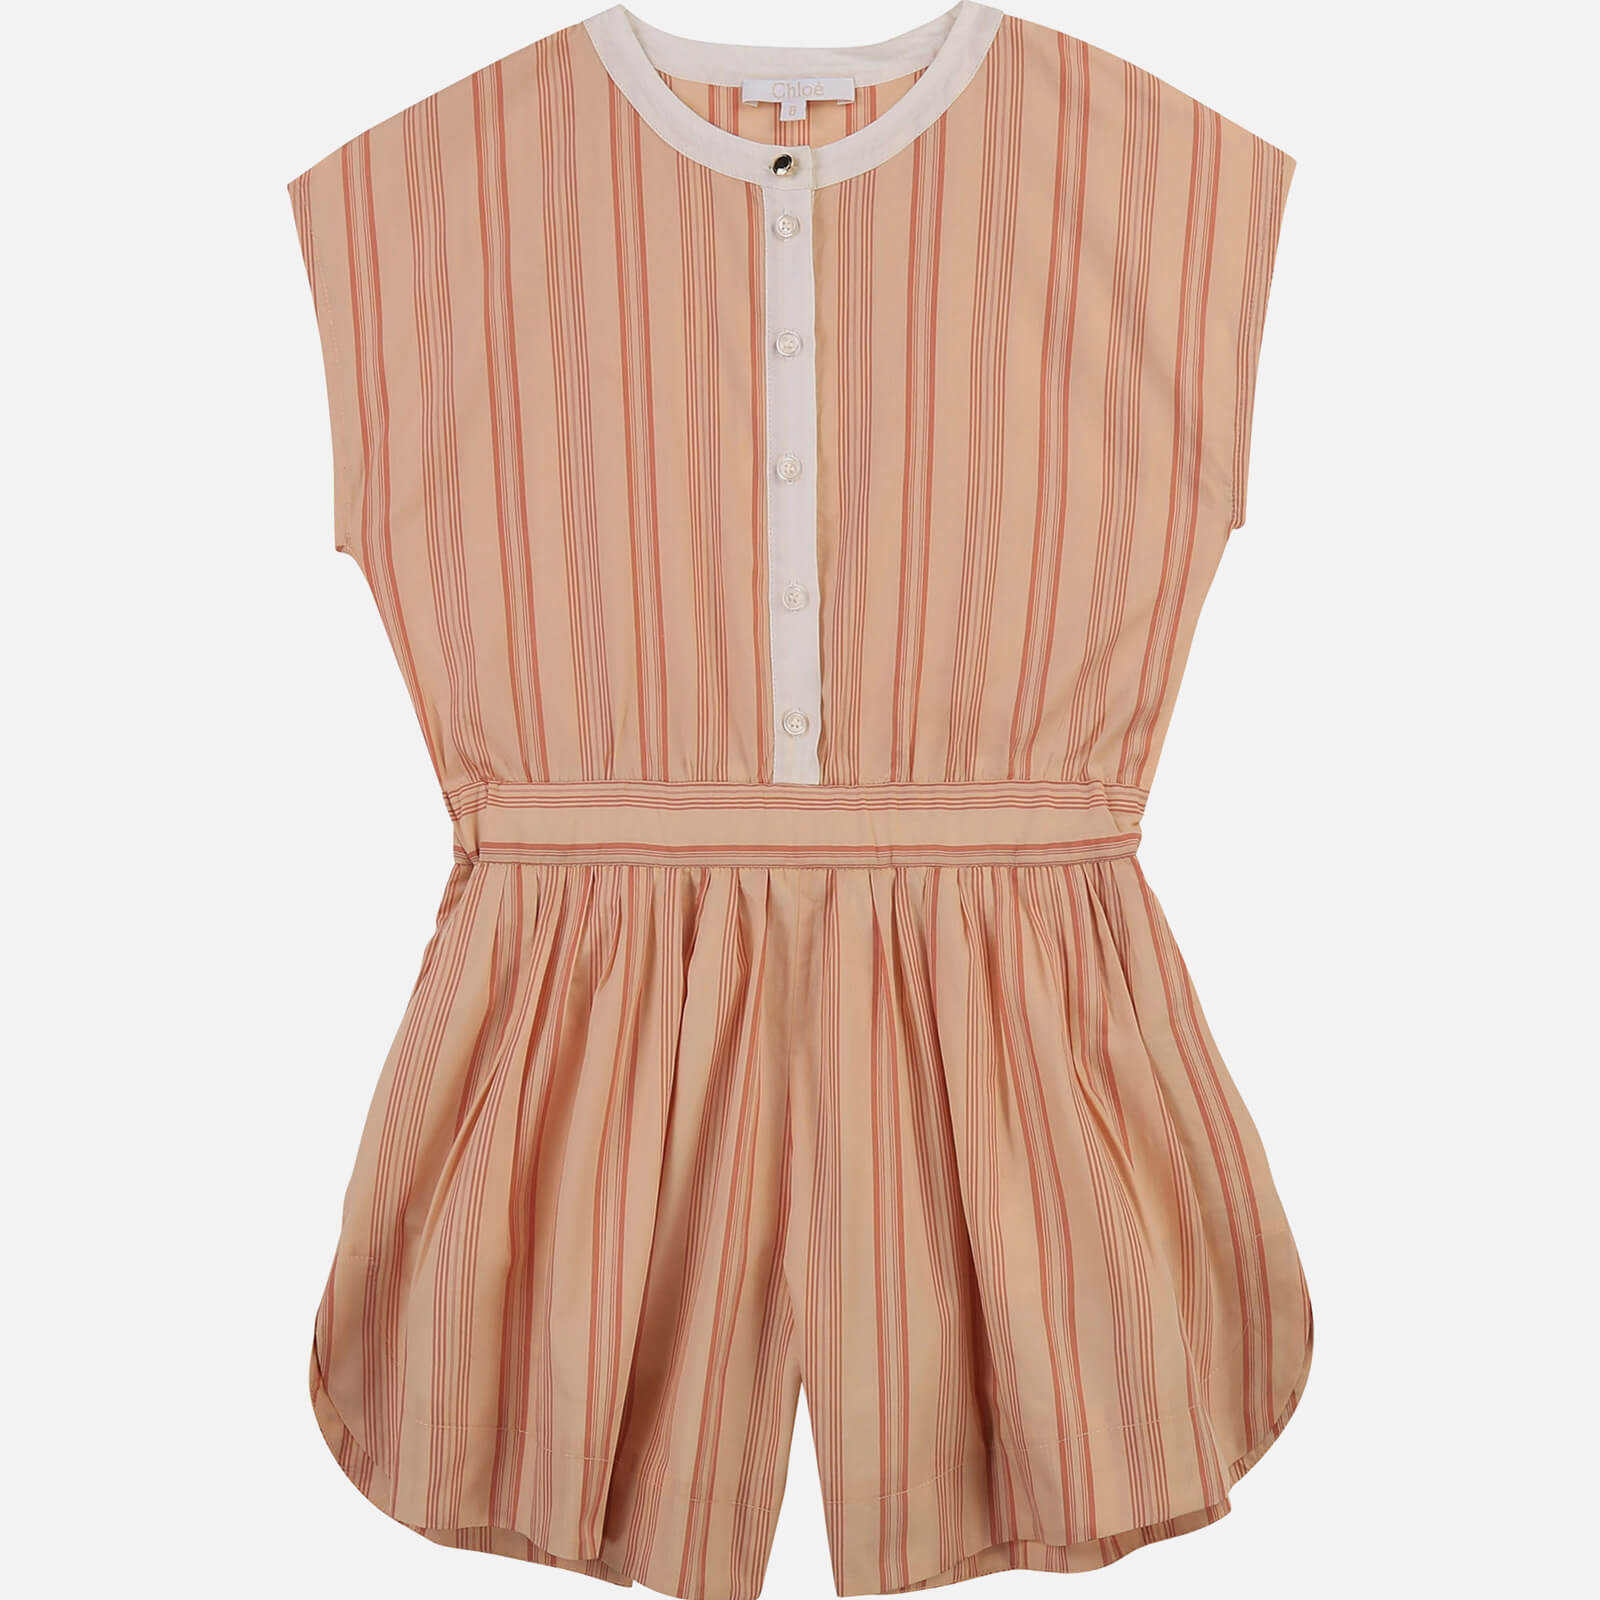 Chloe Girls' All In One Playsuit - Nude - 3 Years